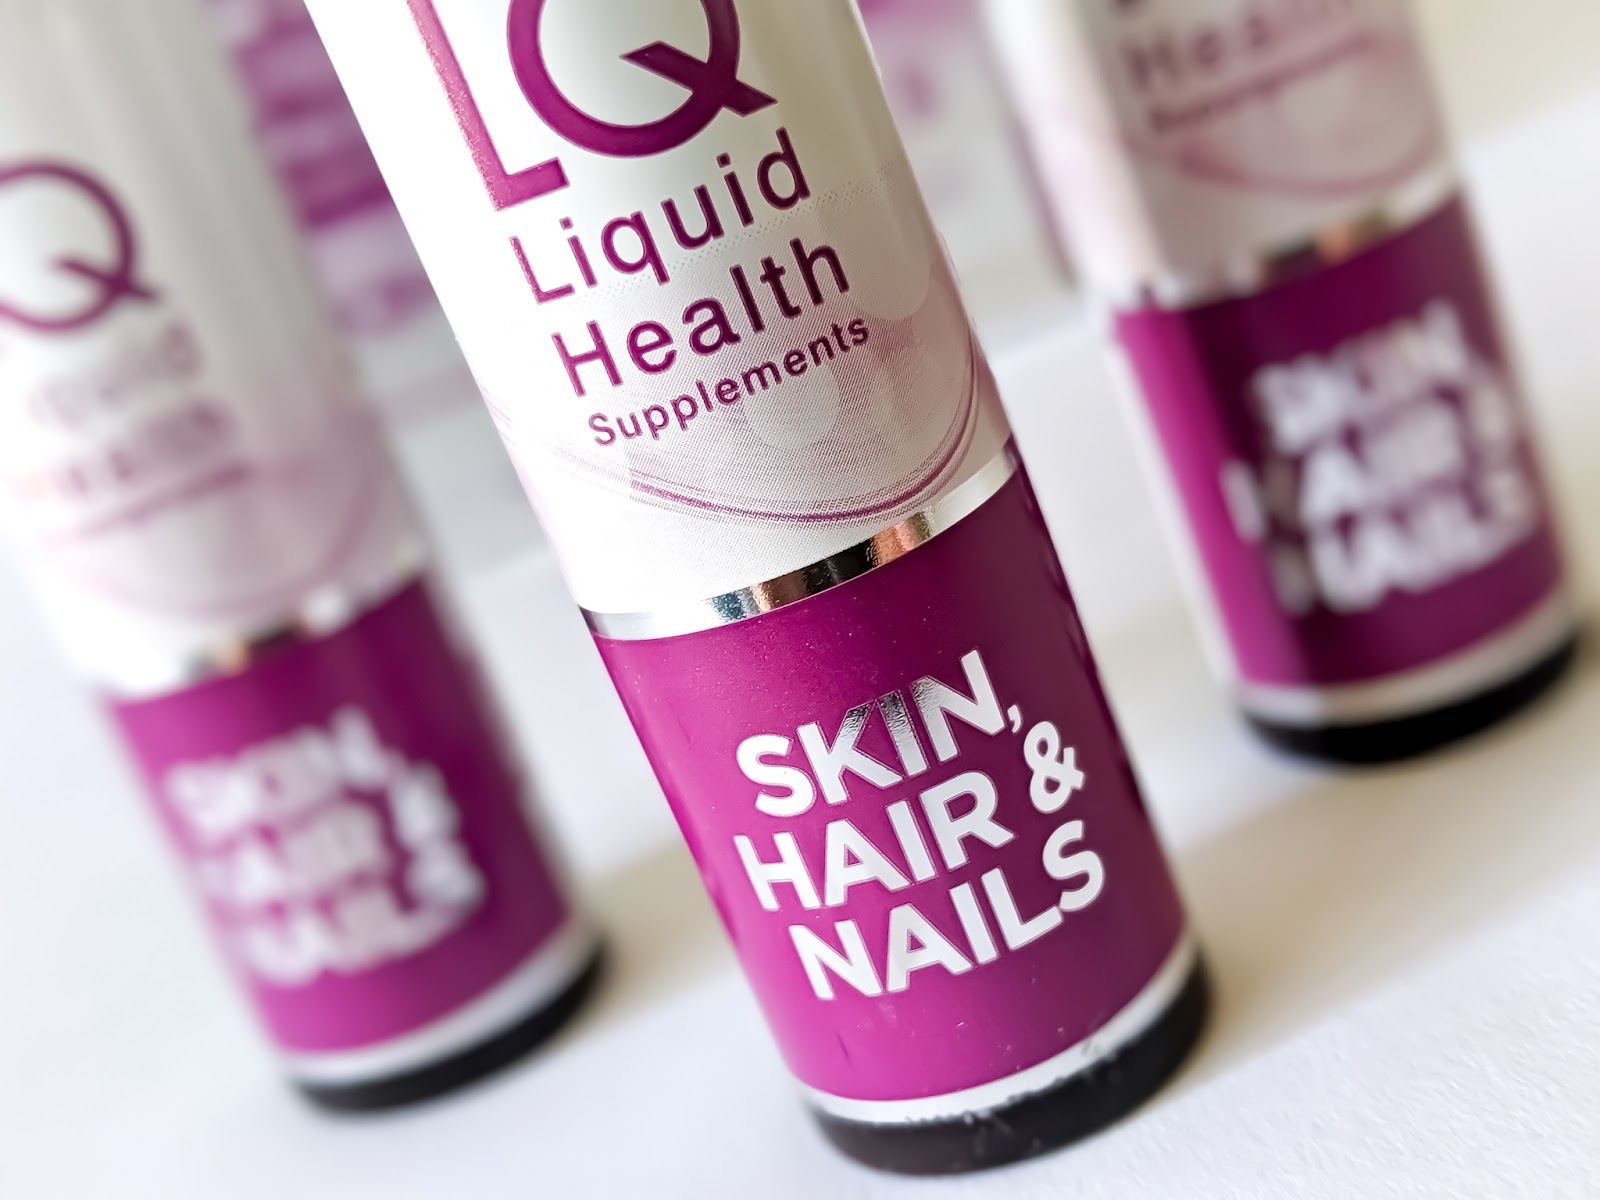 Close up image of LQ Liquid Health Hair, Skin and Nails